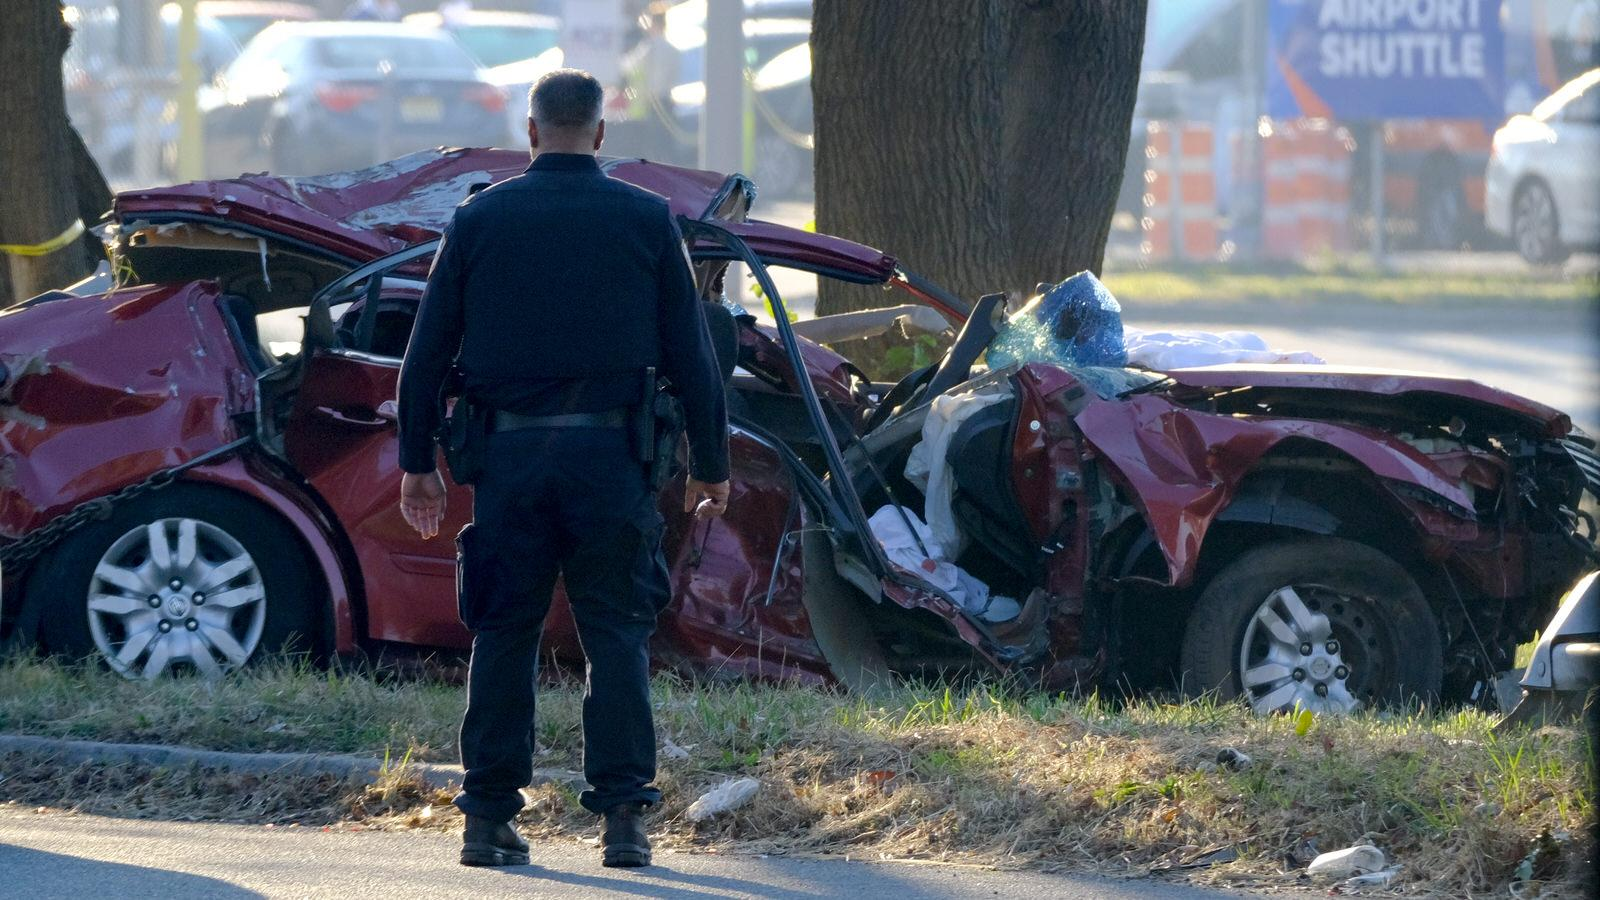 Queens - October 6, 2020 - NYPD ESU, Highway and 106th Precinct Officer is seen investigating a single car accident at 102nd Street and North Conduit Avenue near JFK Airport early Tuesday morning. Three unidentified people died in the accident. (Luiz C. Ribeiro for New York Daily News)